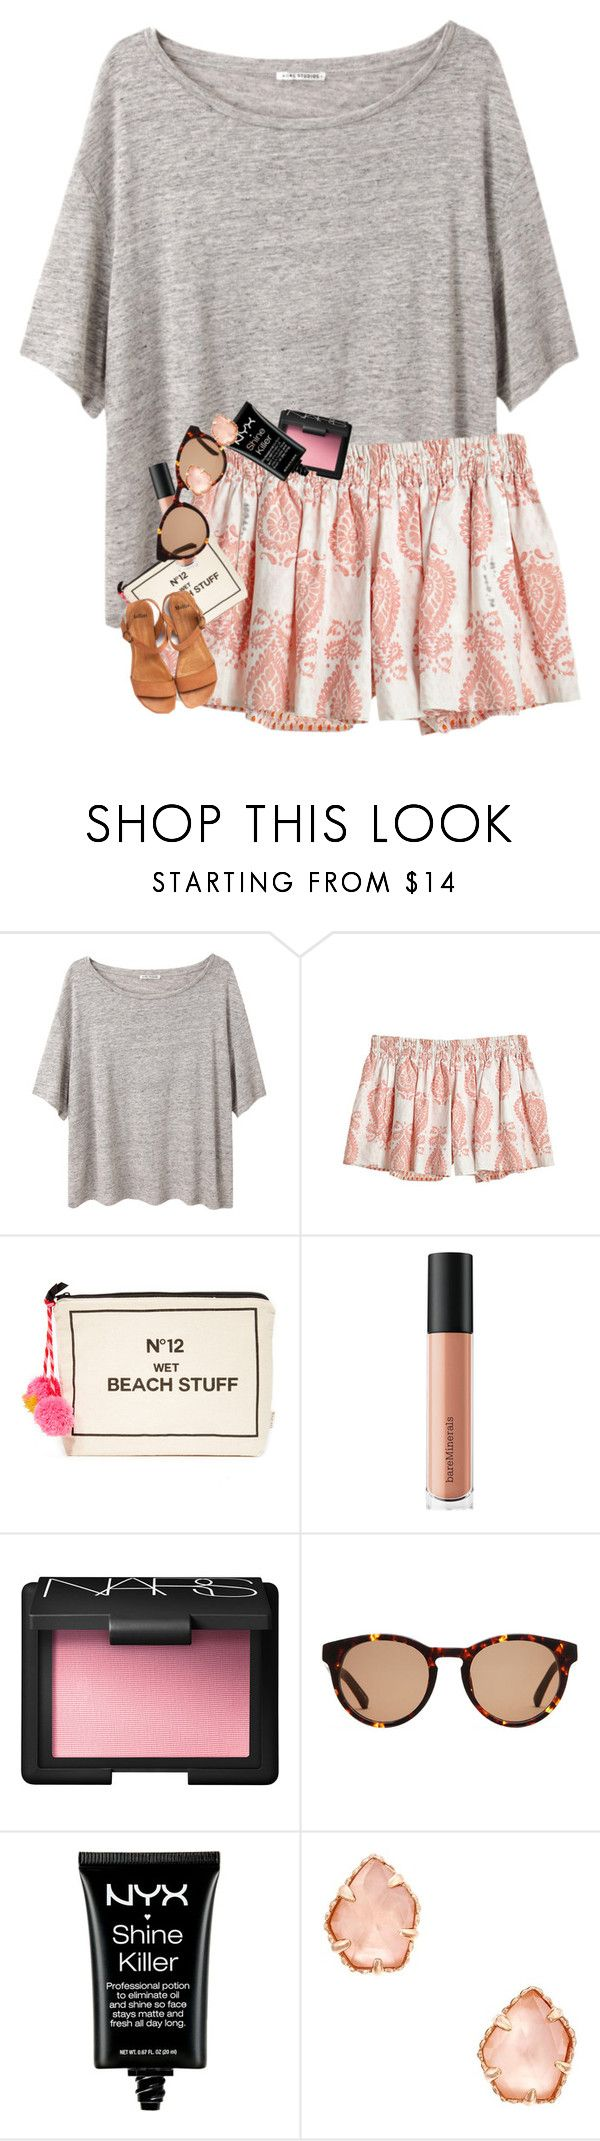 """""""I'm watching Hannah Montana right now """" by erinlmarkel ❤ liked on Polyvore featuring Acne Studios, Calypso St. Barth, Bag-All, Bare Escentuals, NARS Cosmetics, Linda Farrow, NYX and Kendra Scott"""